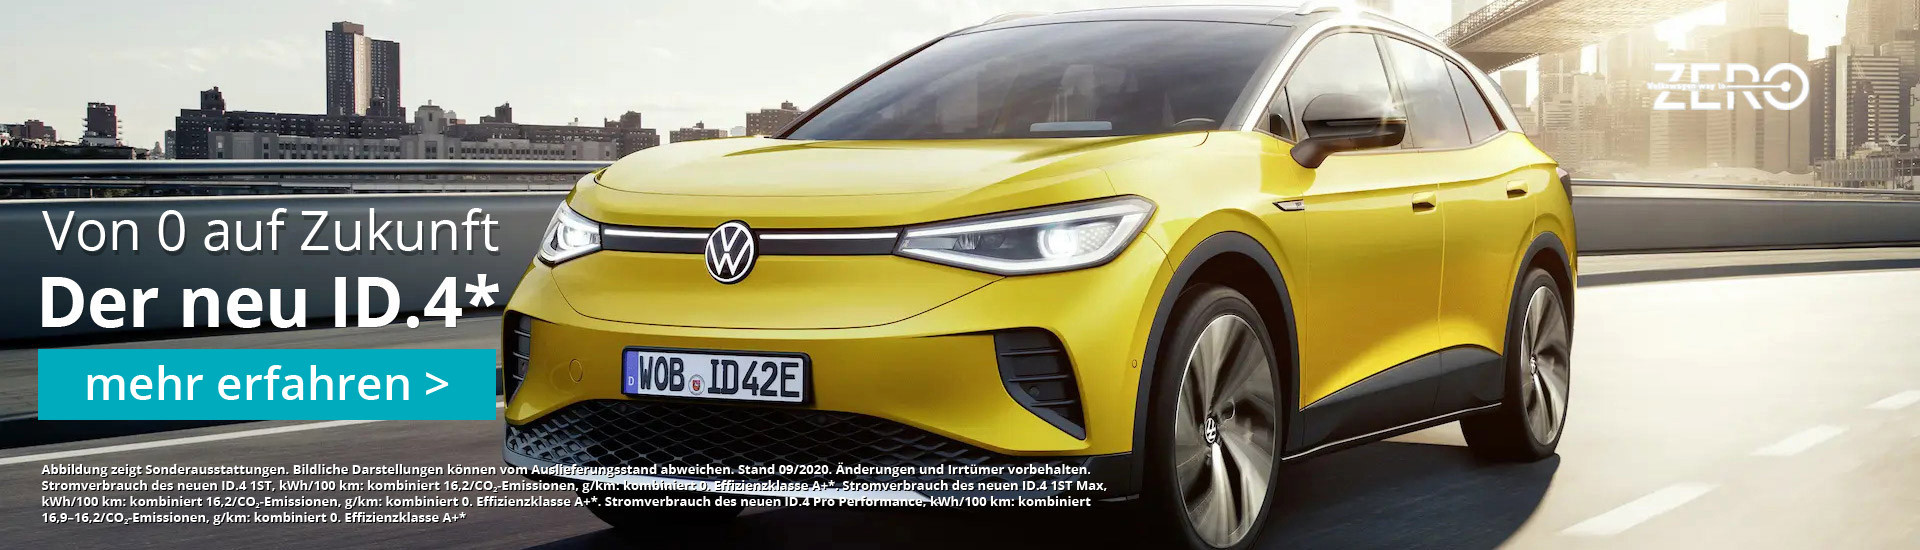 Slider-VW-ID4.jpg